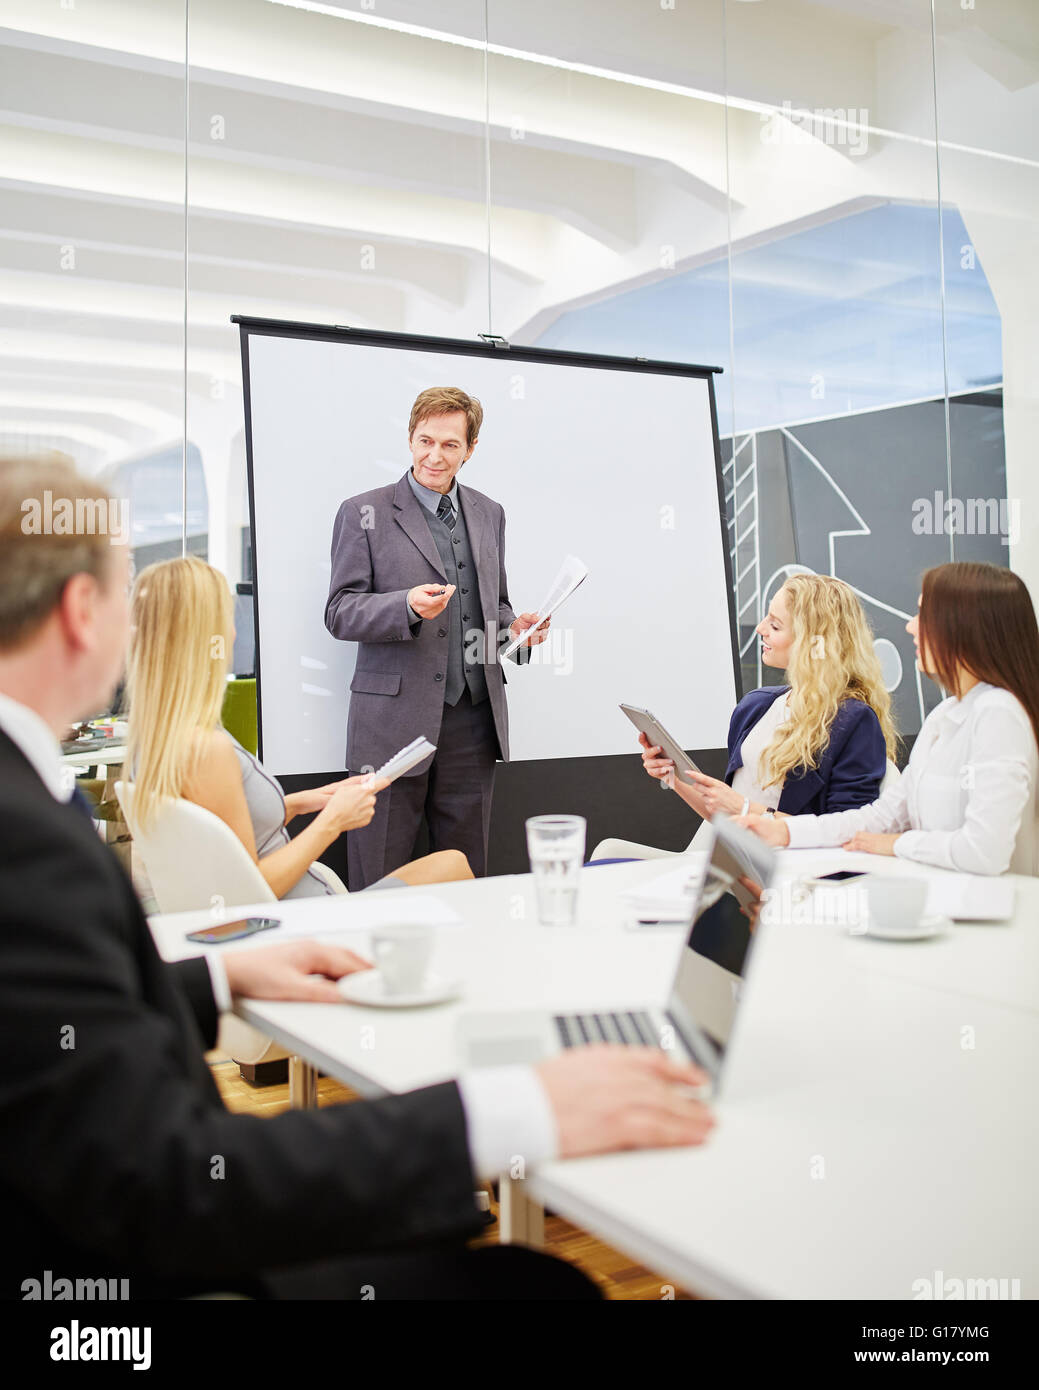 Consultant in a presentation during a business meeting in the conference room - Stock Image